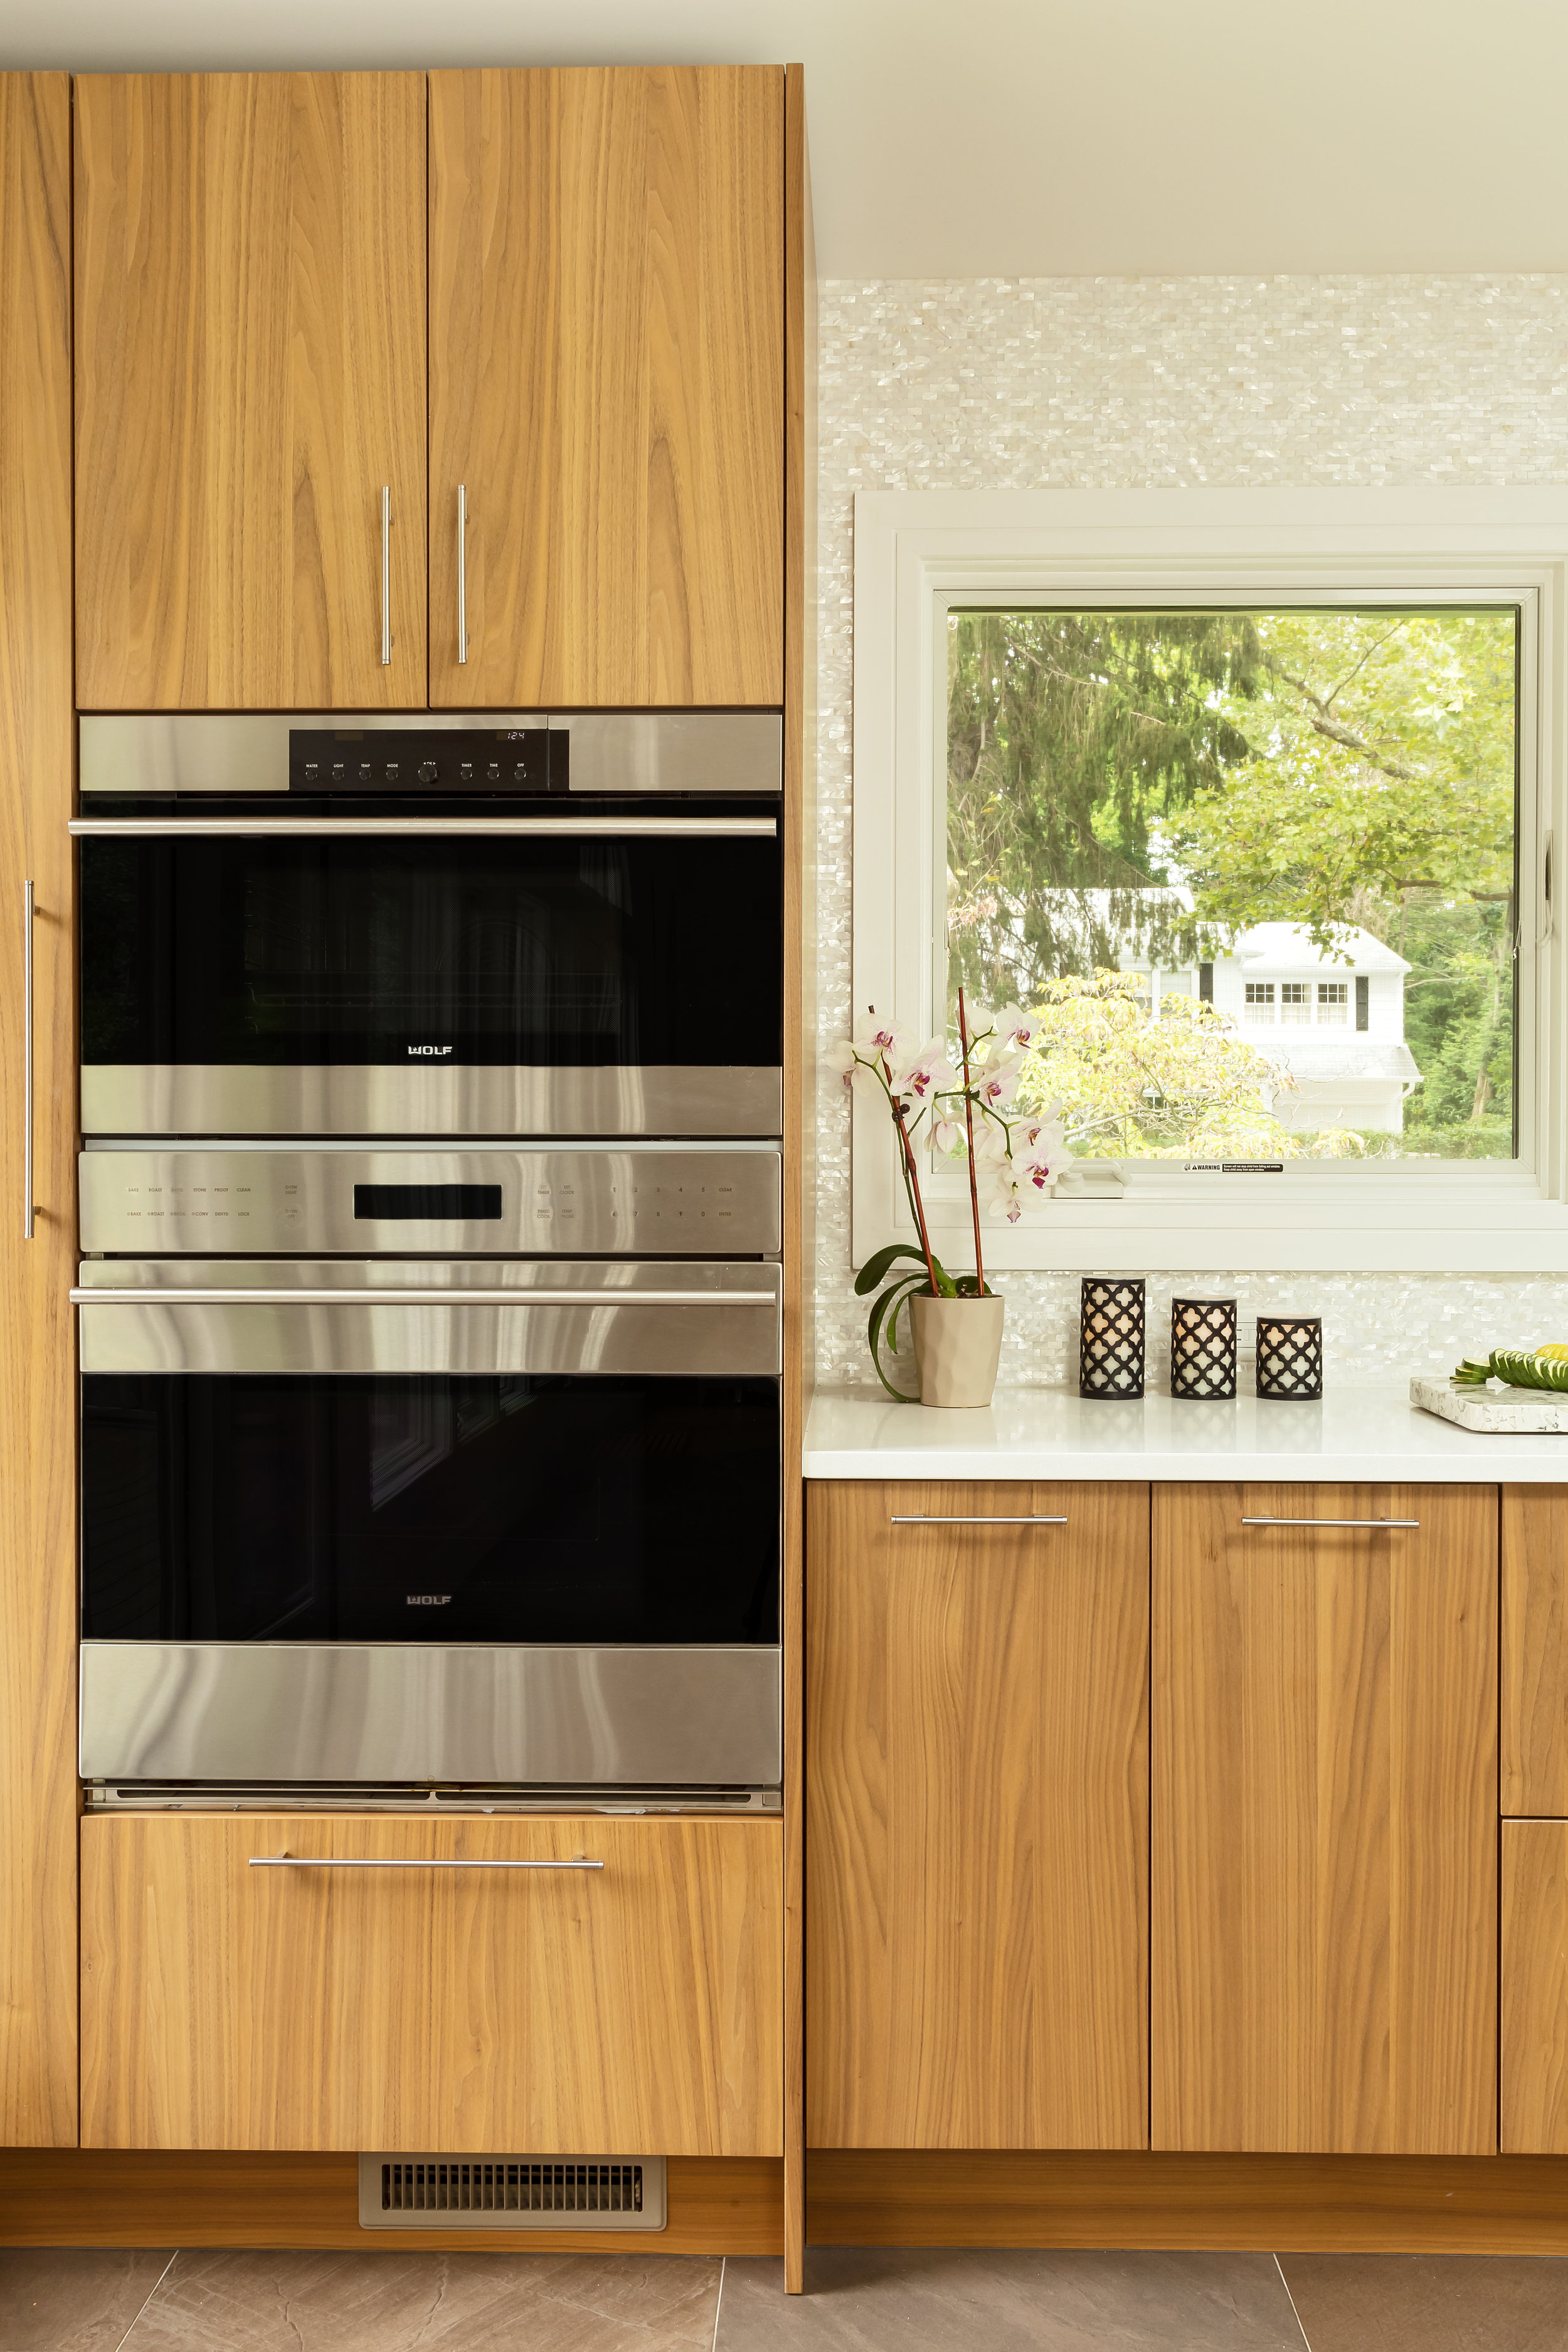 Contemporary style kitchen with speed cooking oven